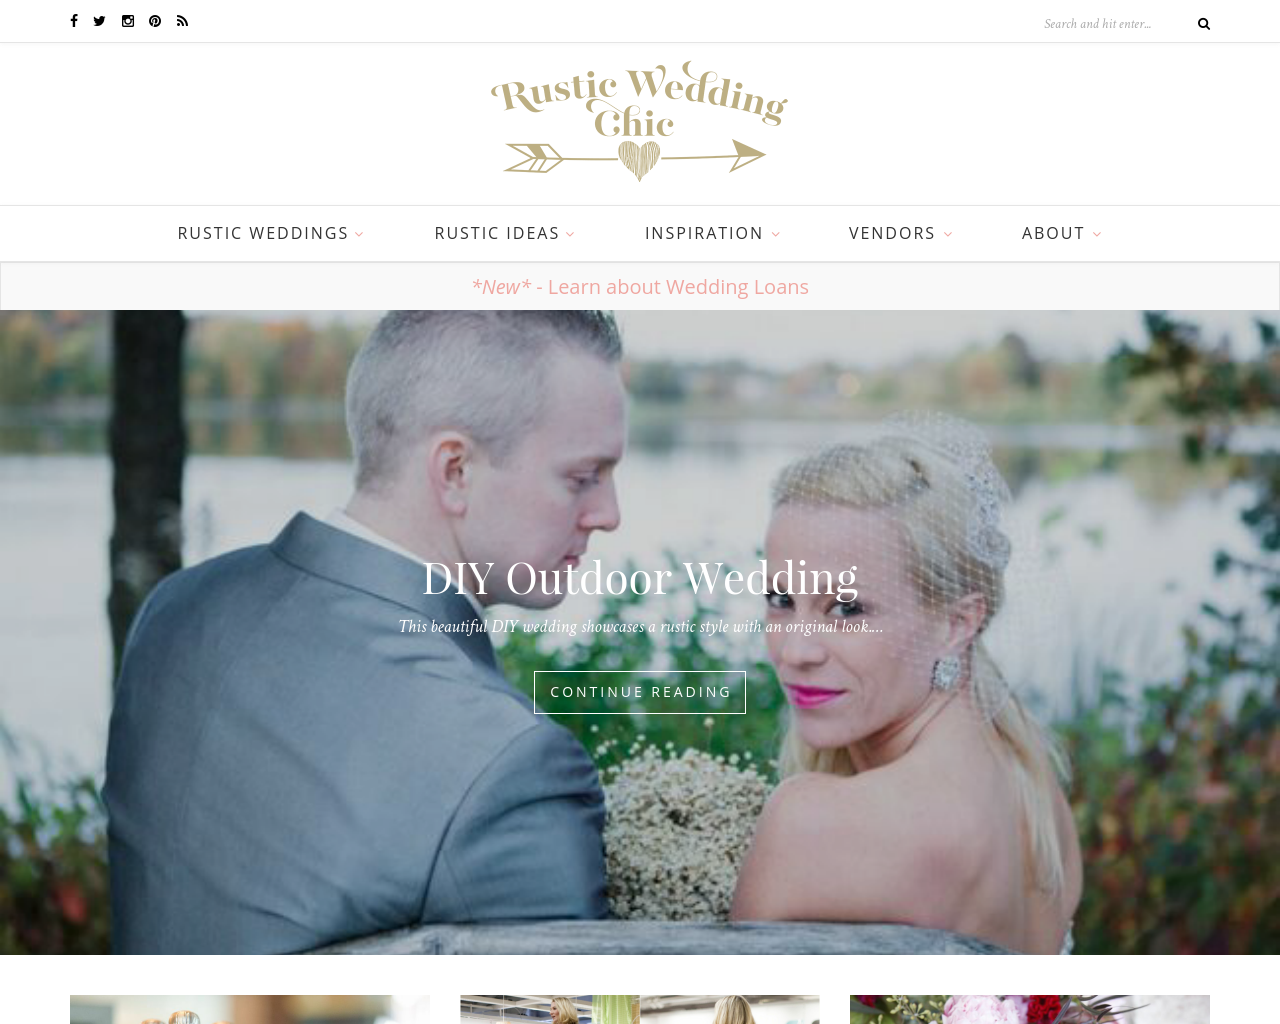 Rustic-Wedding-Chic-Advertising-Reviews-Pricing